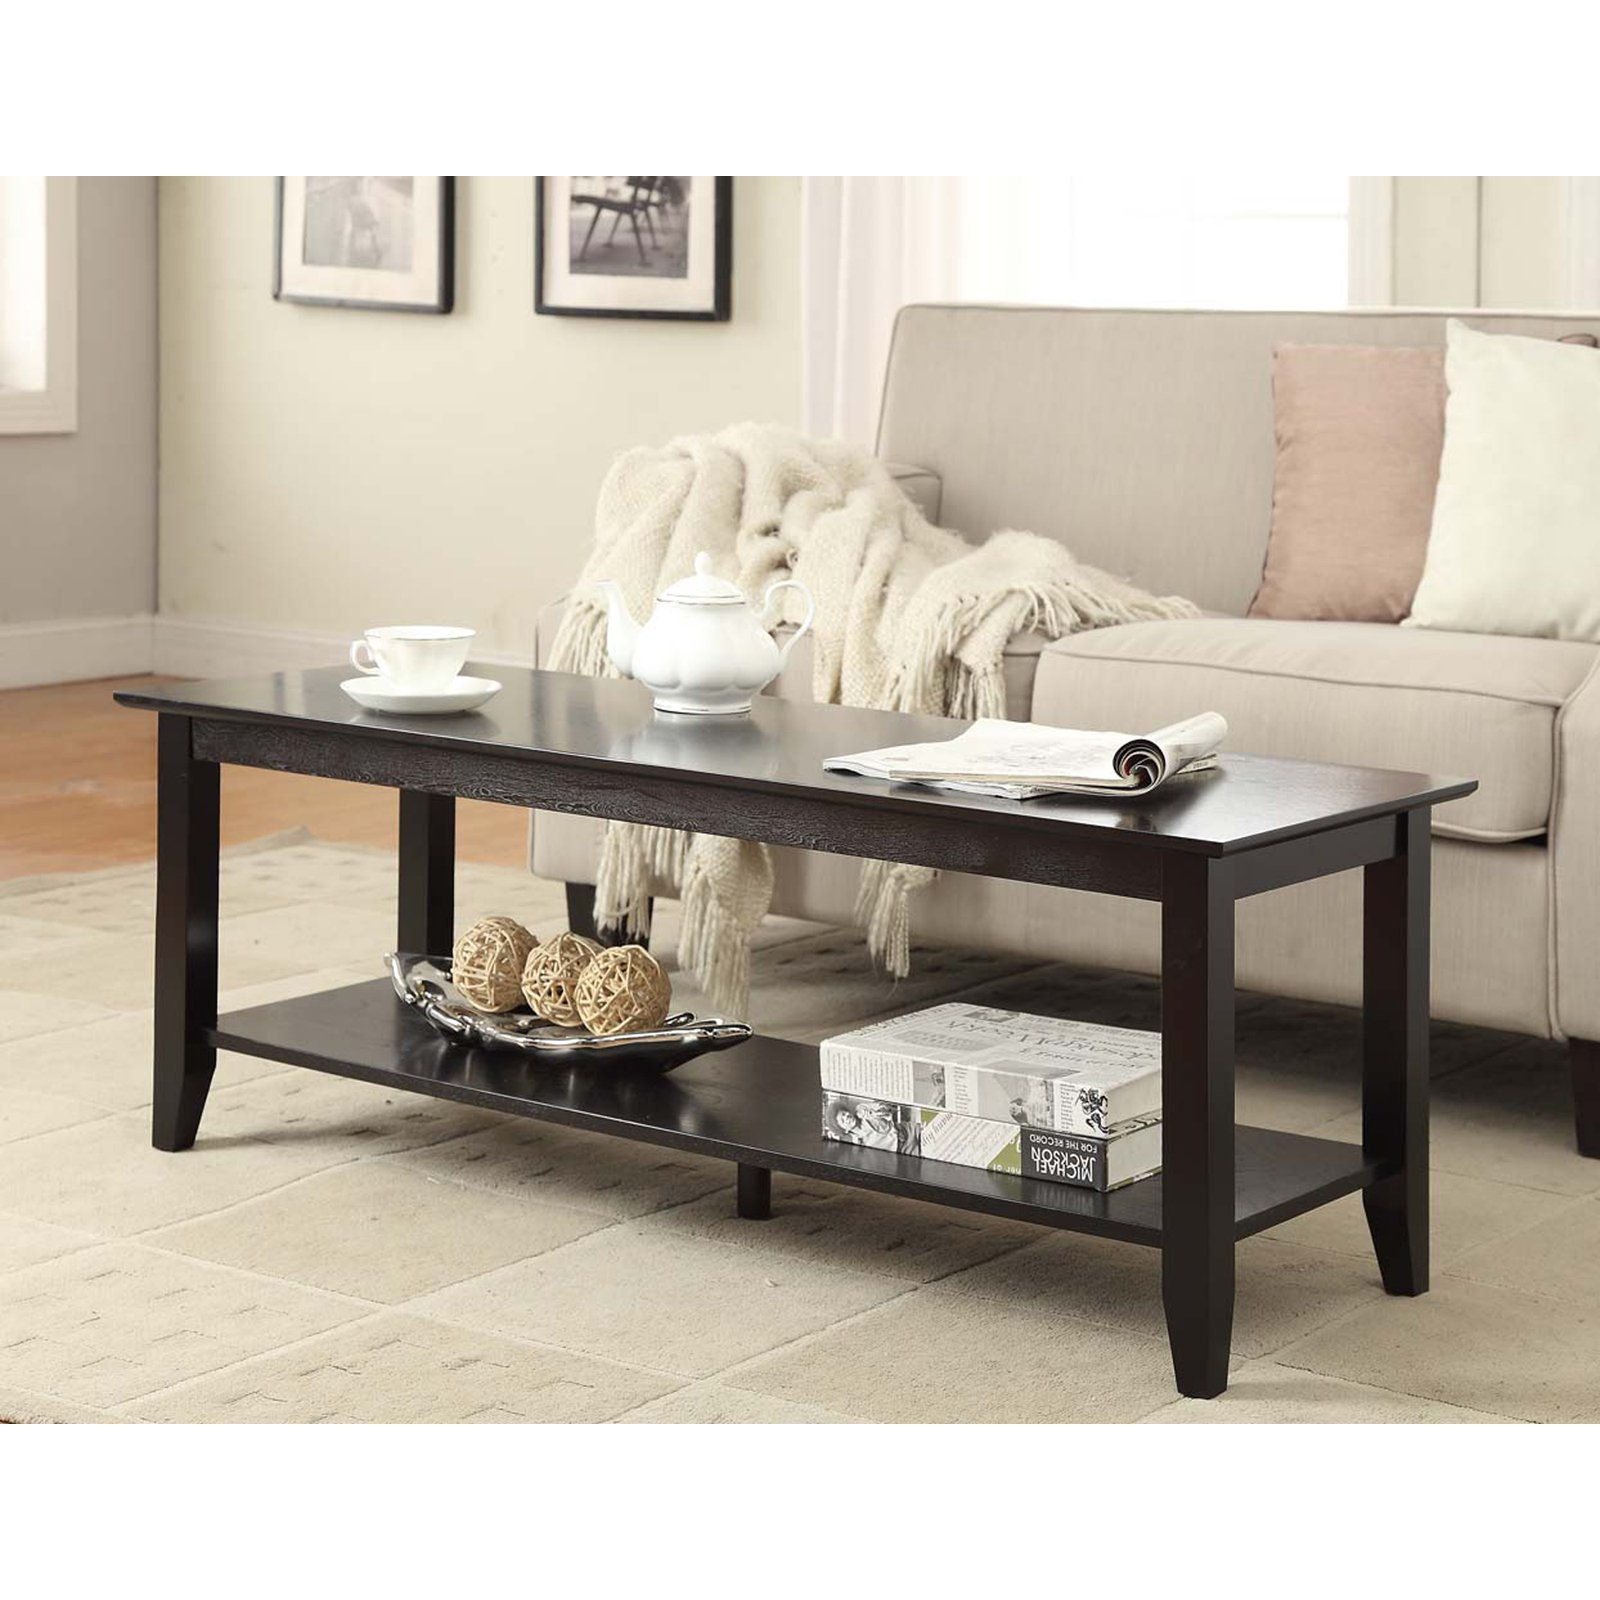 Convenience Concepts American Heritage Coffee Table, Multiple Finishes